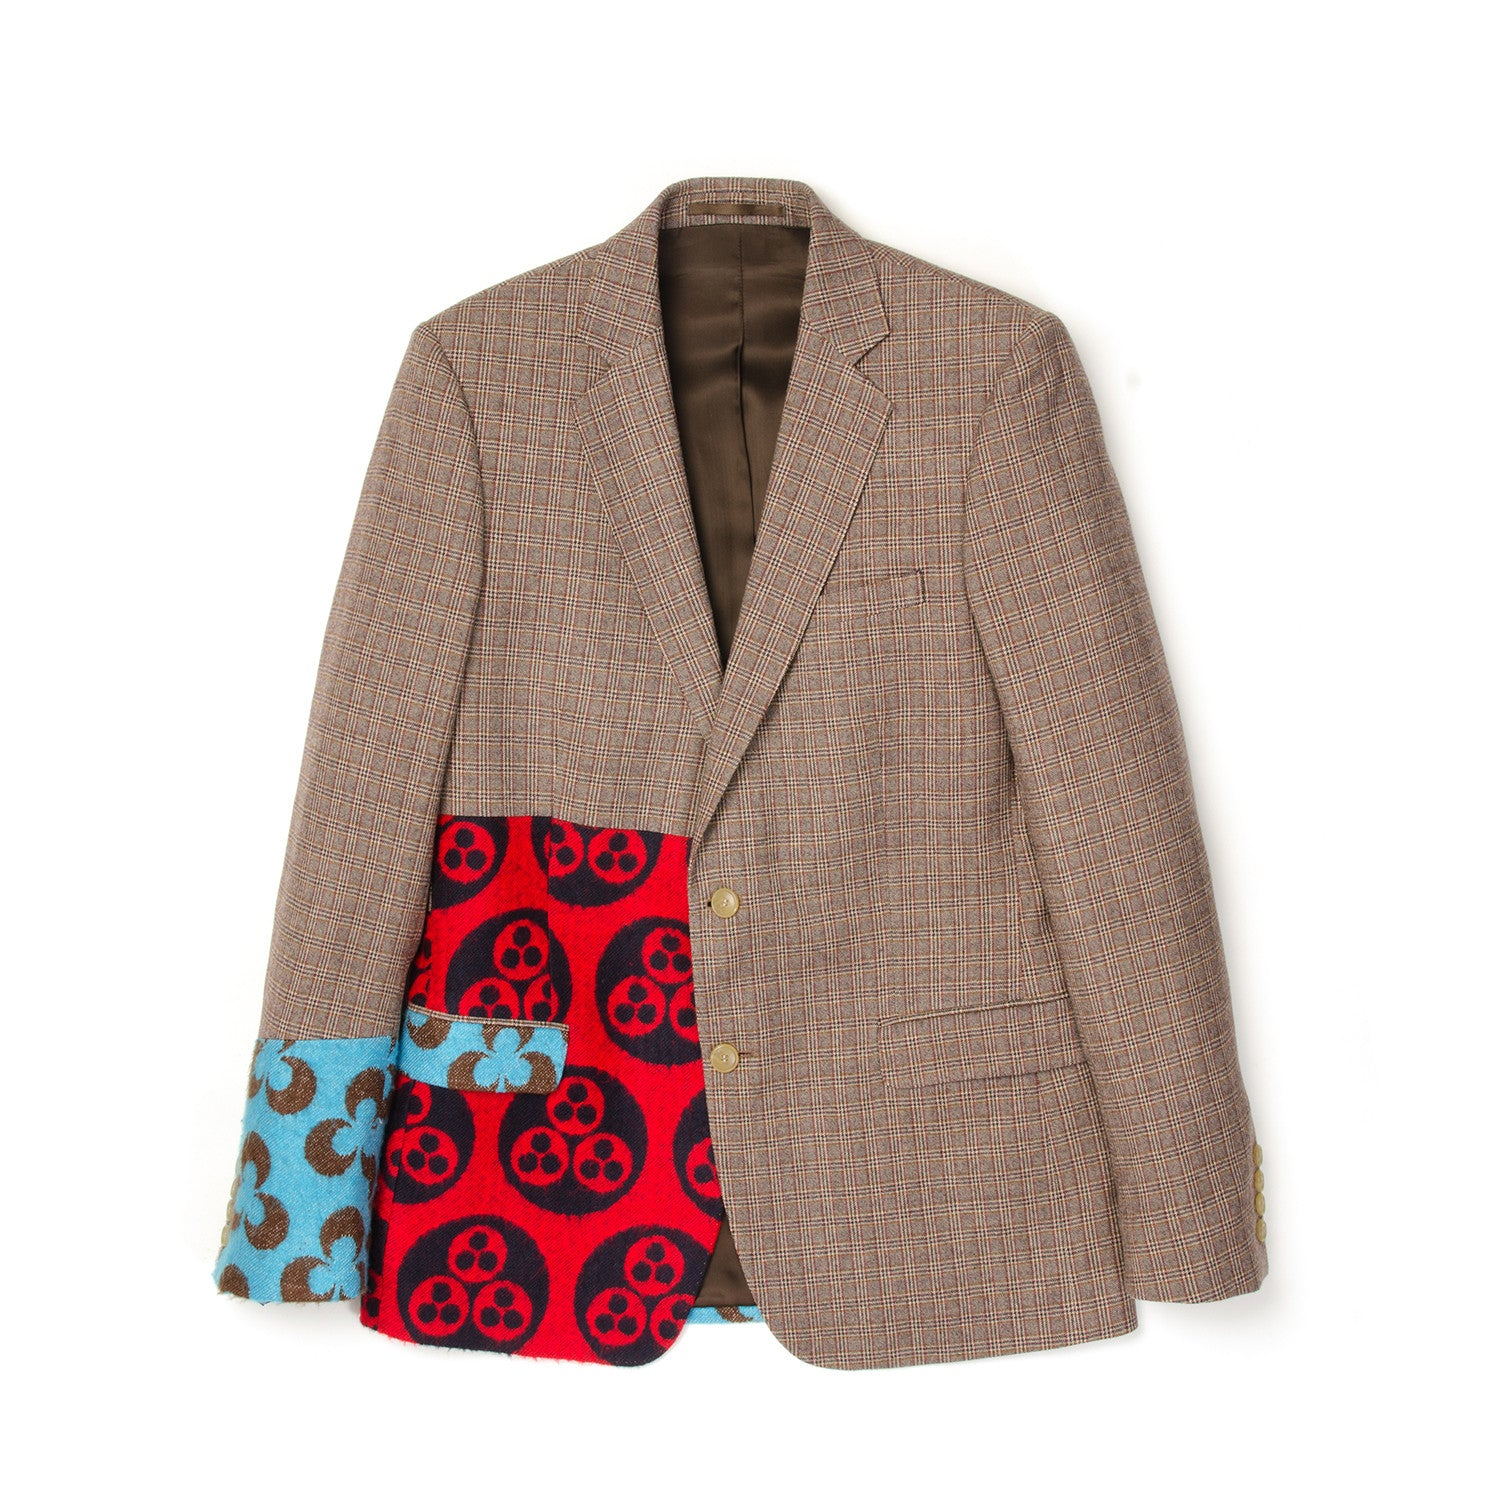 Walter van Beirendonck Sharp Blazer Patch Print Brown - Concrete